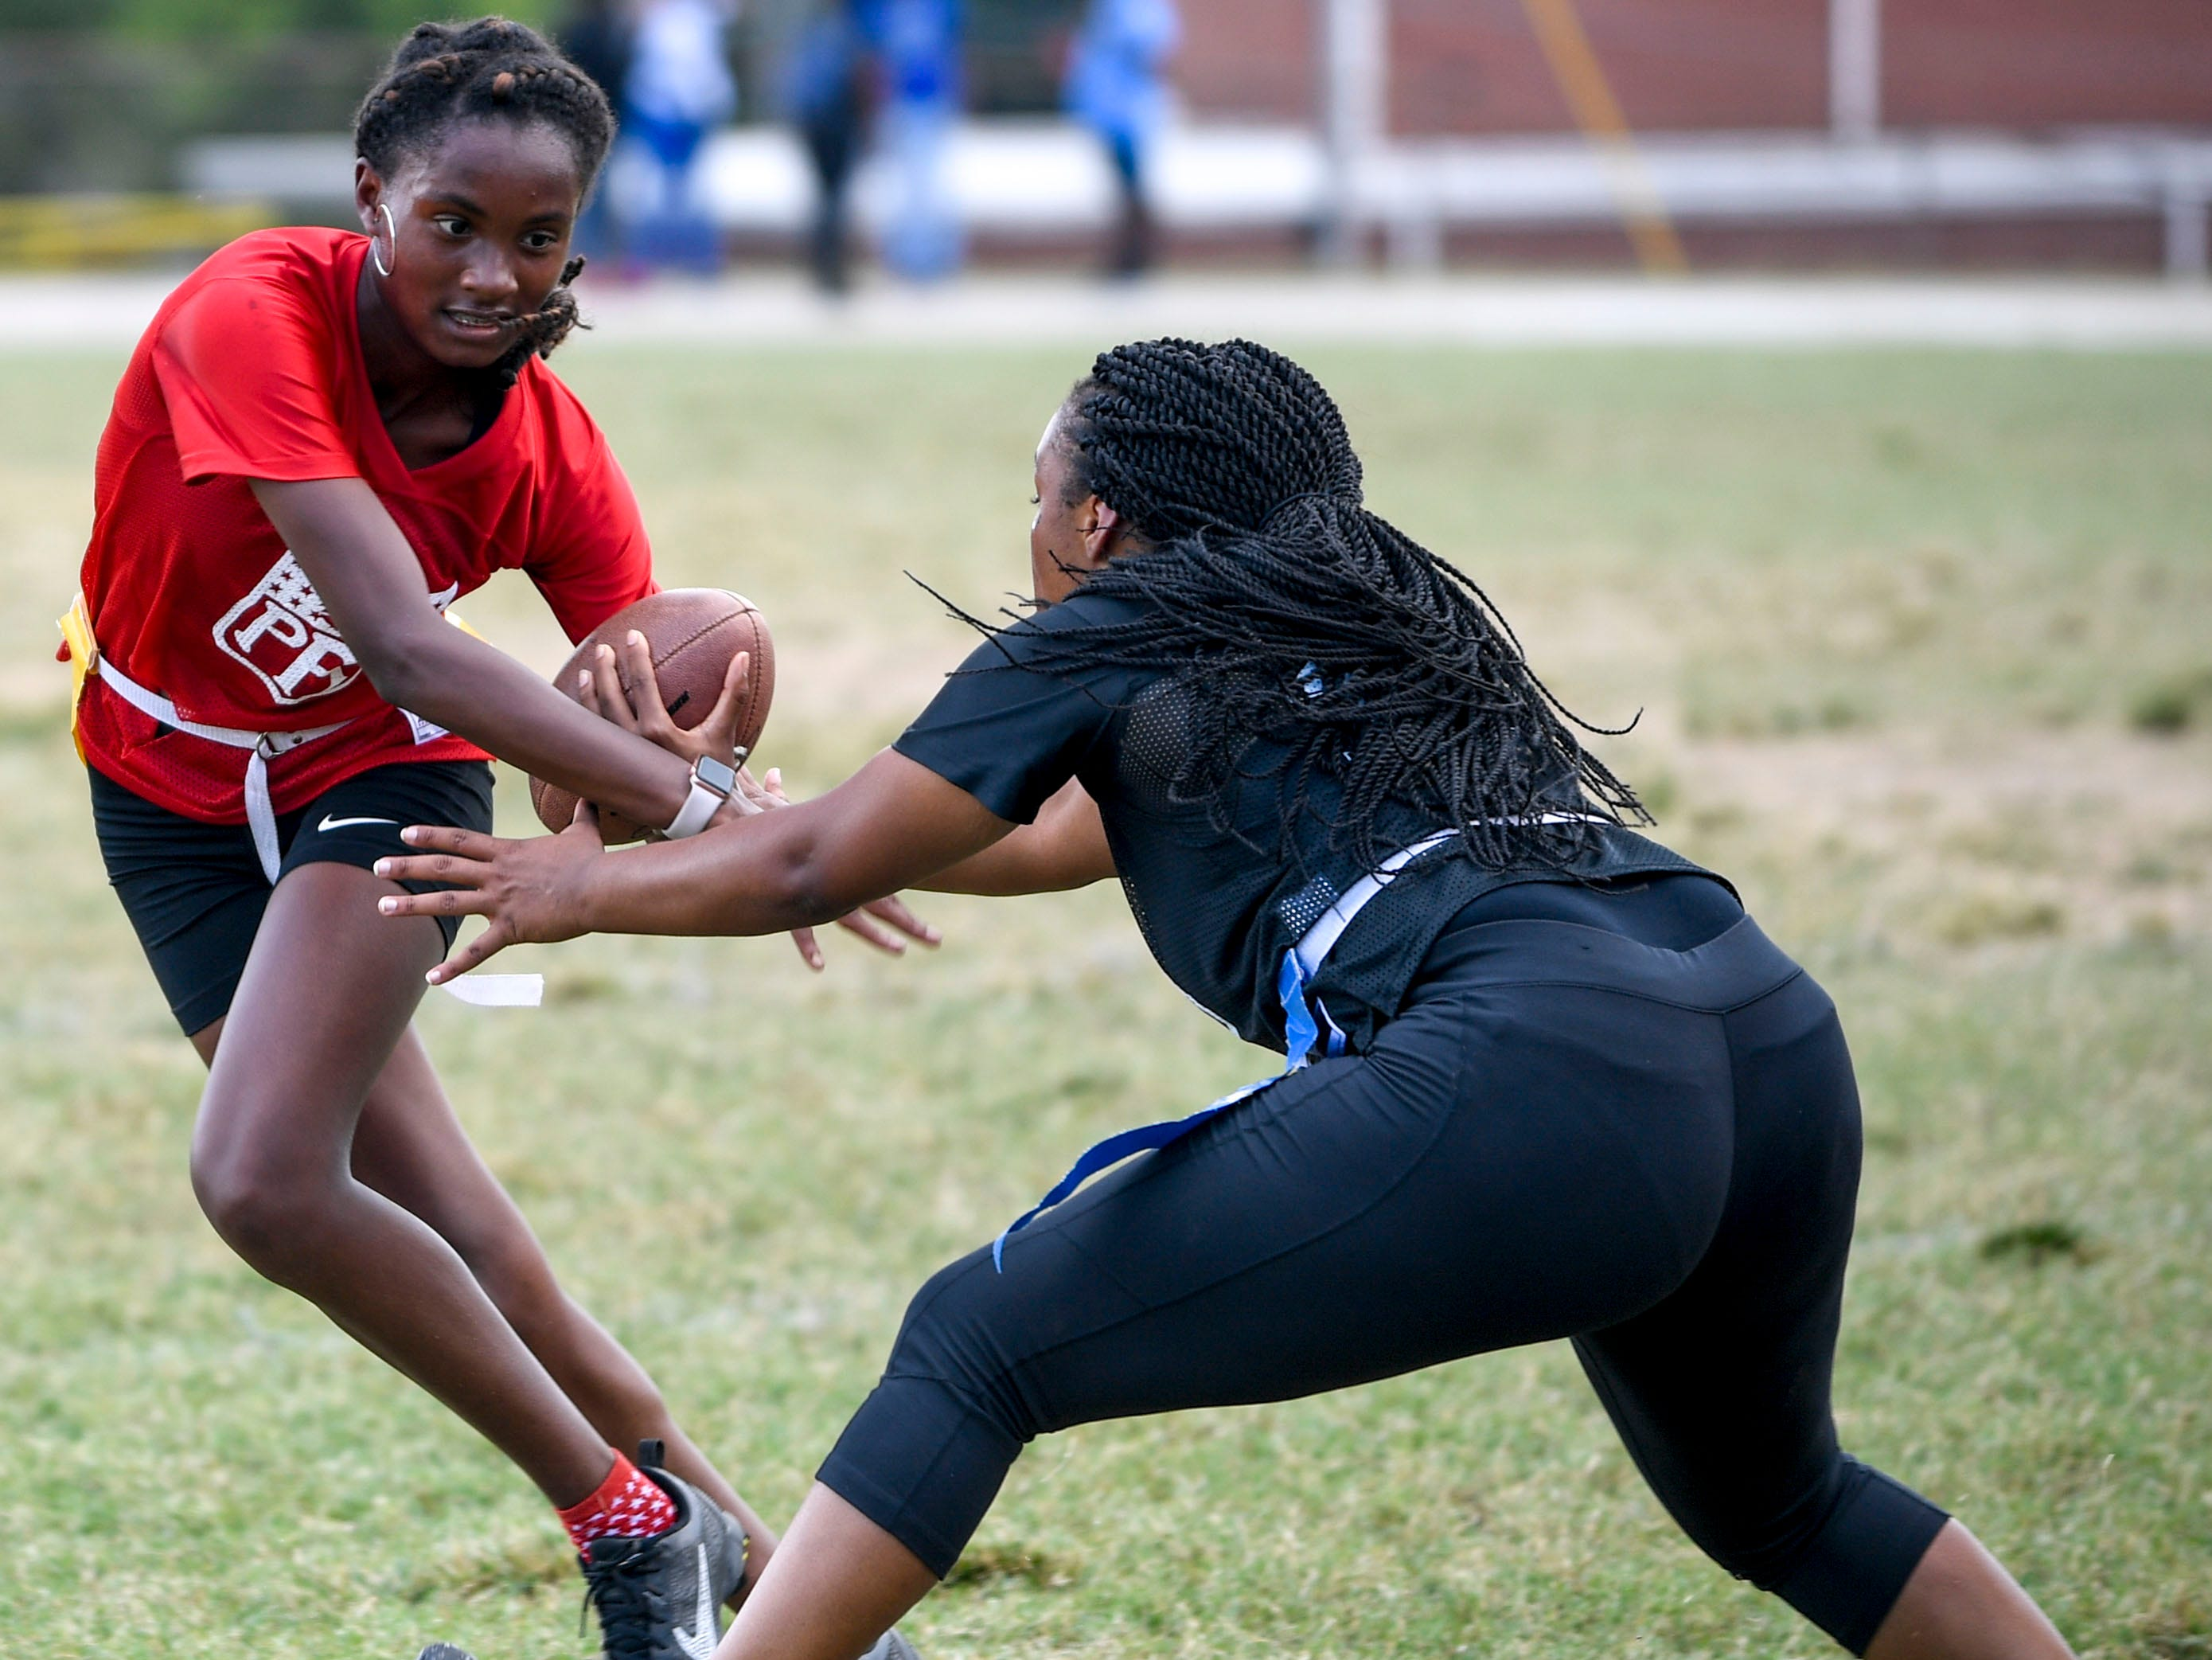 A sophomore player evades a senior defensive player during the 2017 Powder Puff game at Madison Academic High School in Jackson, Tenn., on Friday, Sept. 21, 2018.